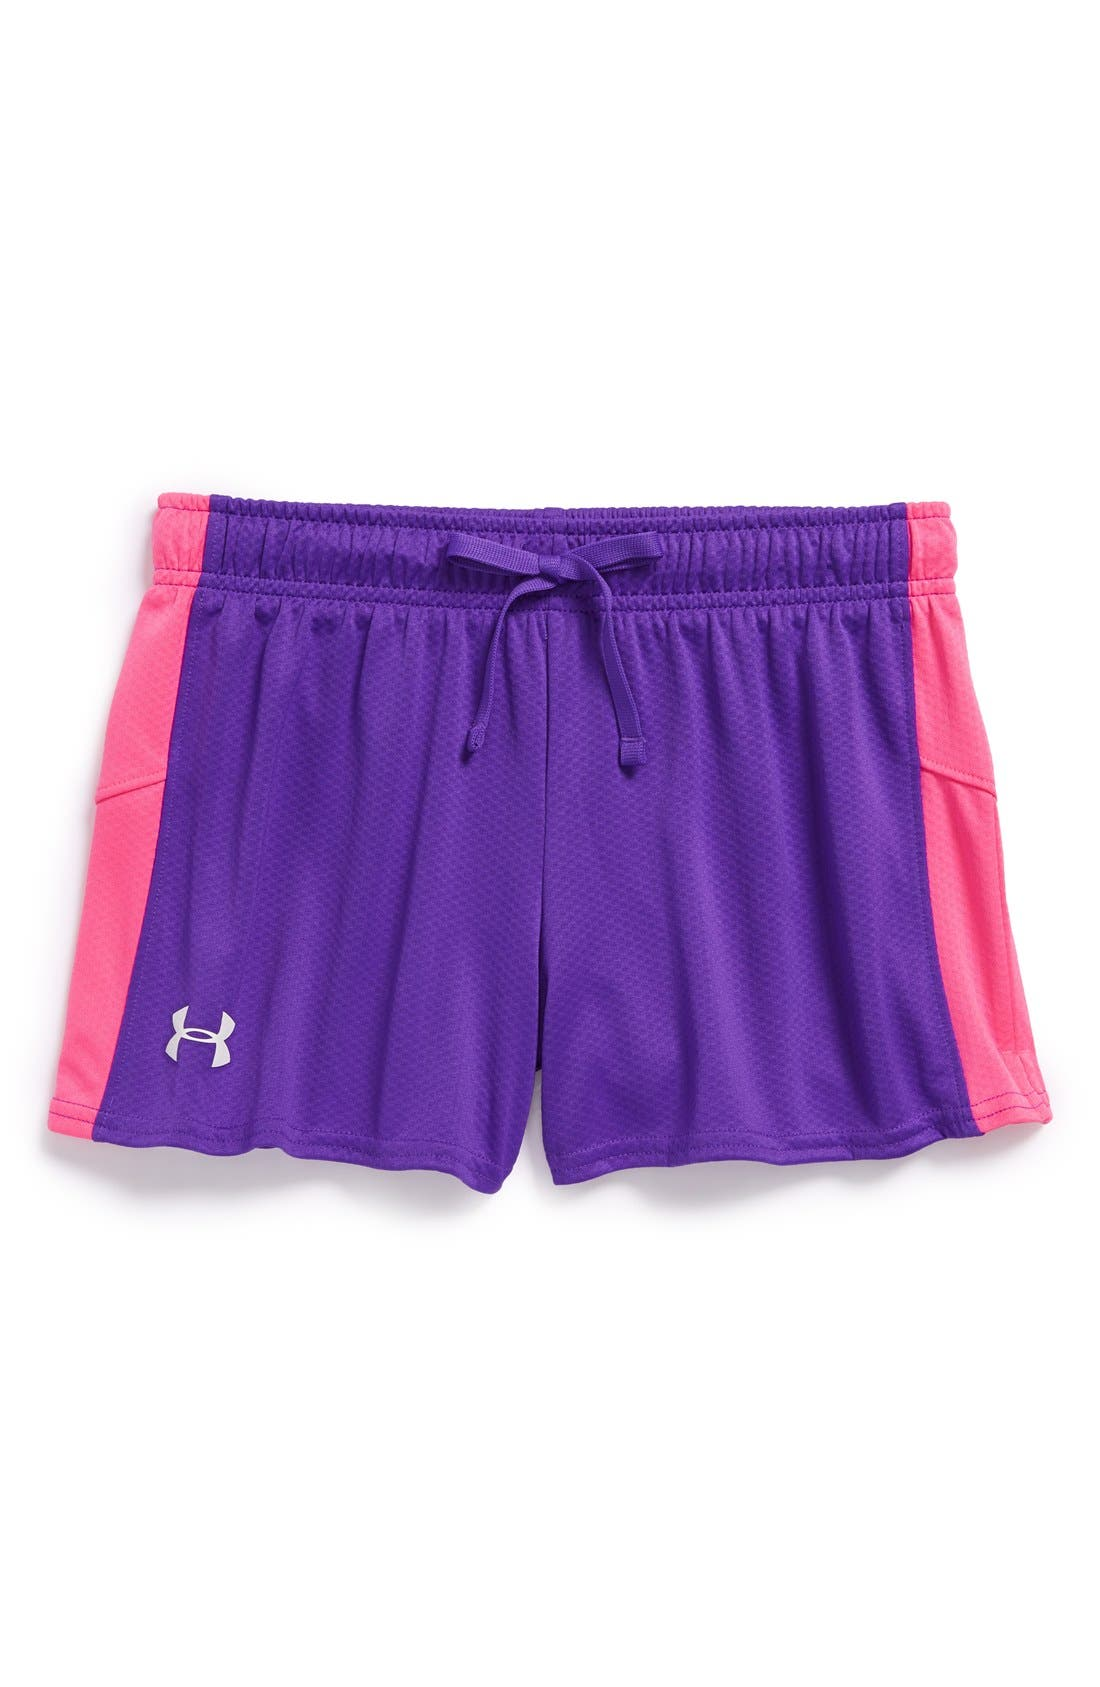 Main Image - Under Armour 'Intensity' HeatGear® Shorts (Big Girls)